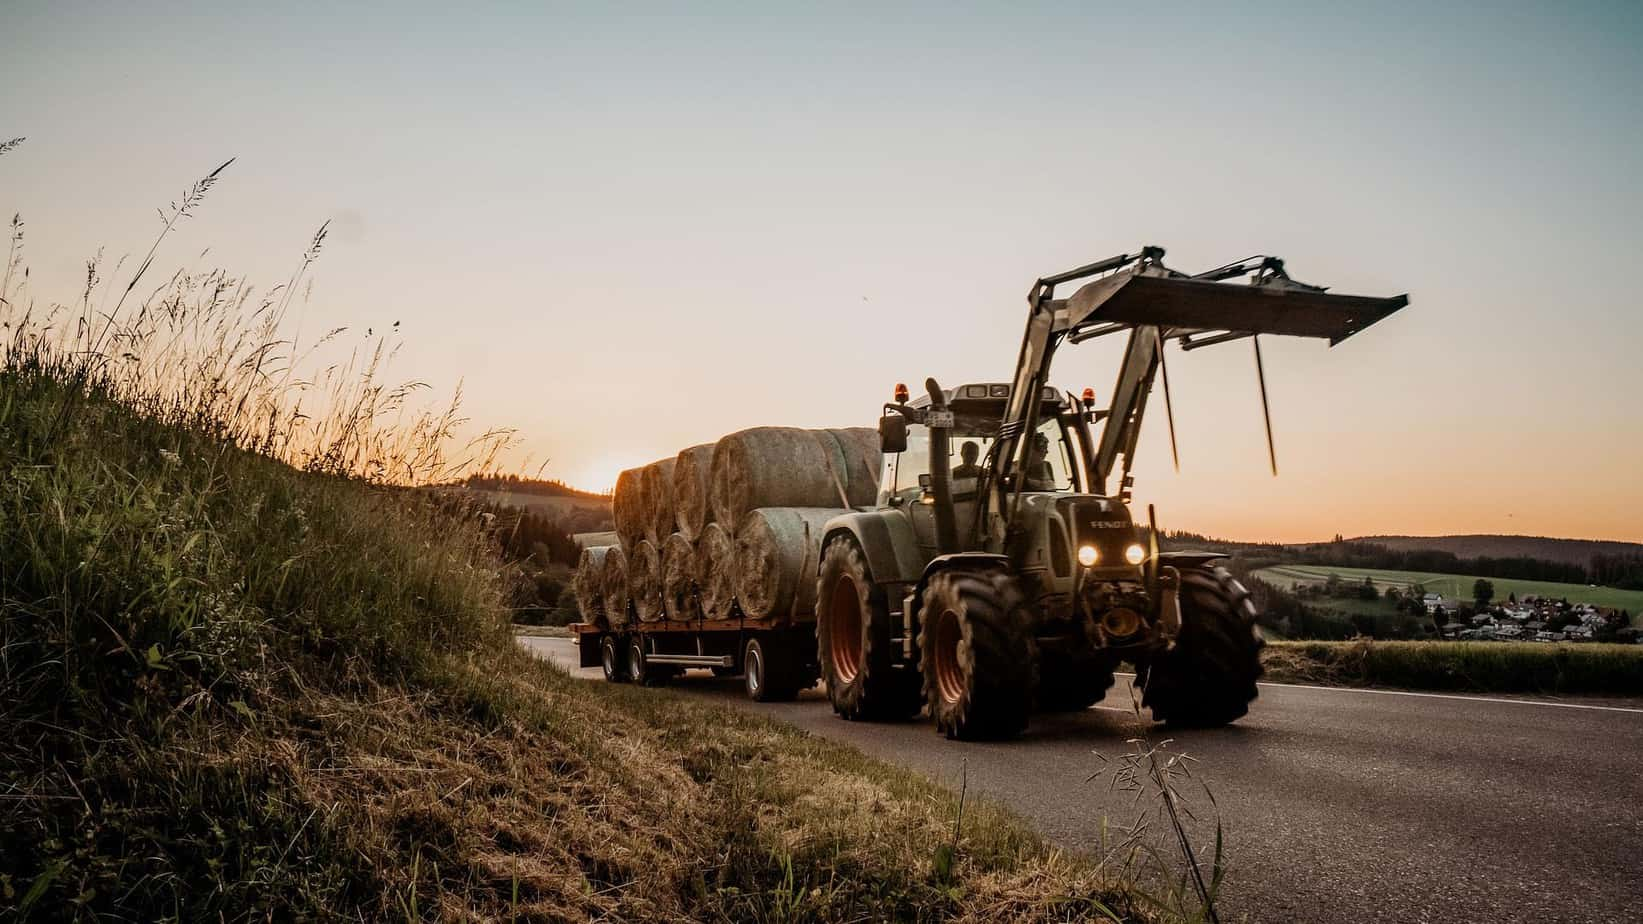 Drivers are warned to keep a watchful eye out for harvest season vehicles. Photo: Supplied/Food for Mzansi